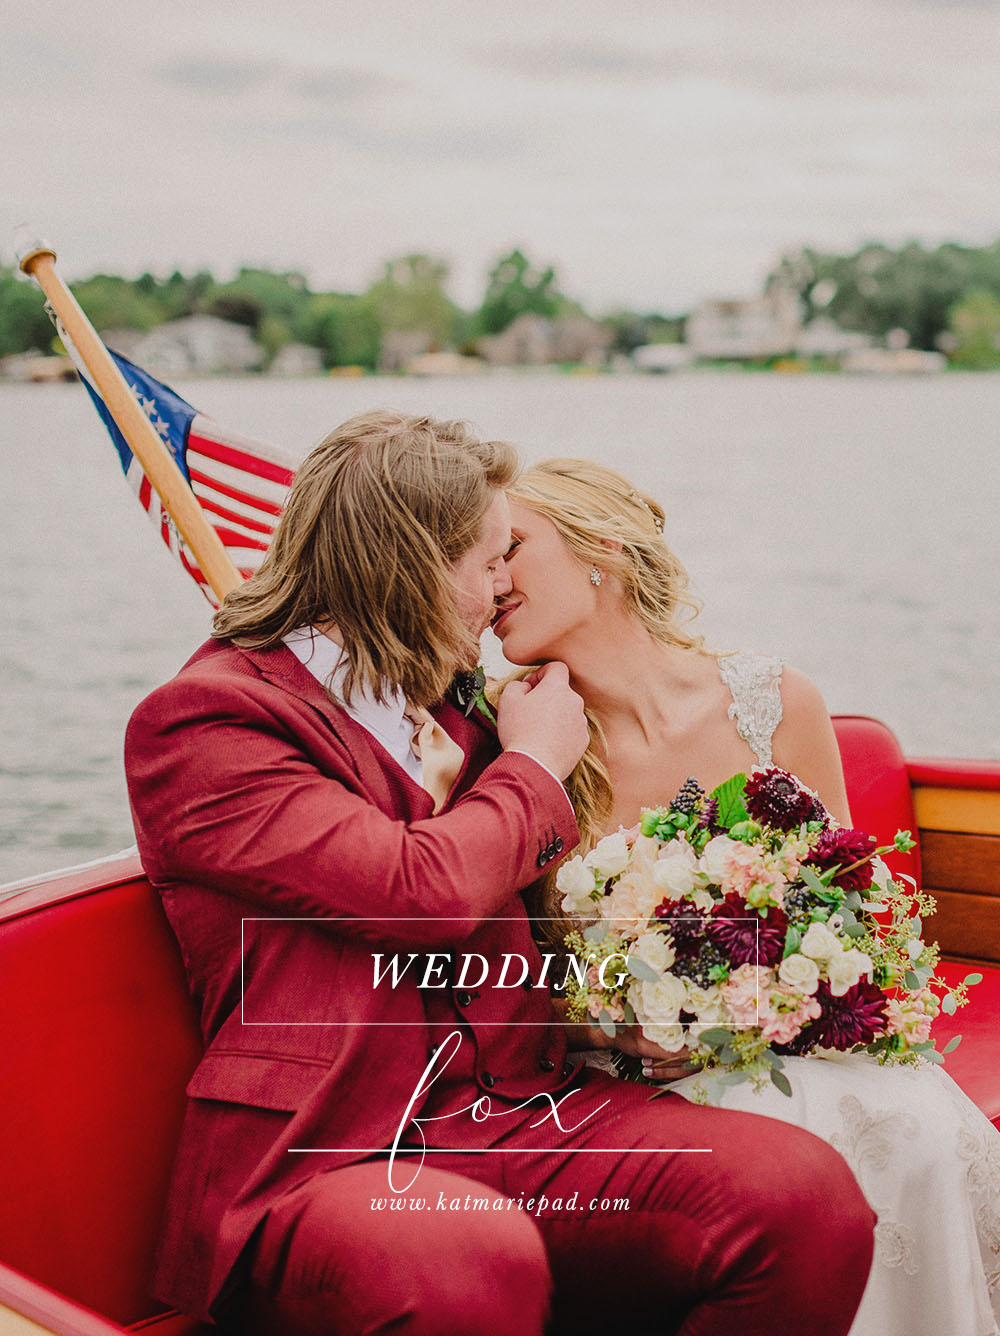 Audrey + Ben | Stunning Lakeside Wedding with All the Mamma Mia Two Feels | Lake James, Angola, IN | Indianapolis Based International Elopement & Destination Wedding Photographers